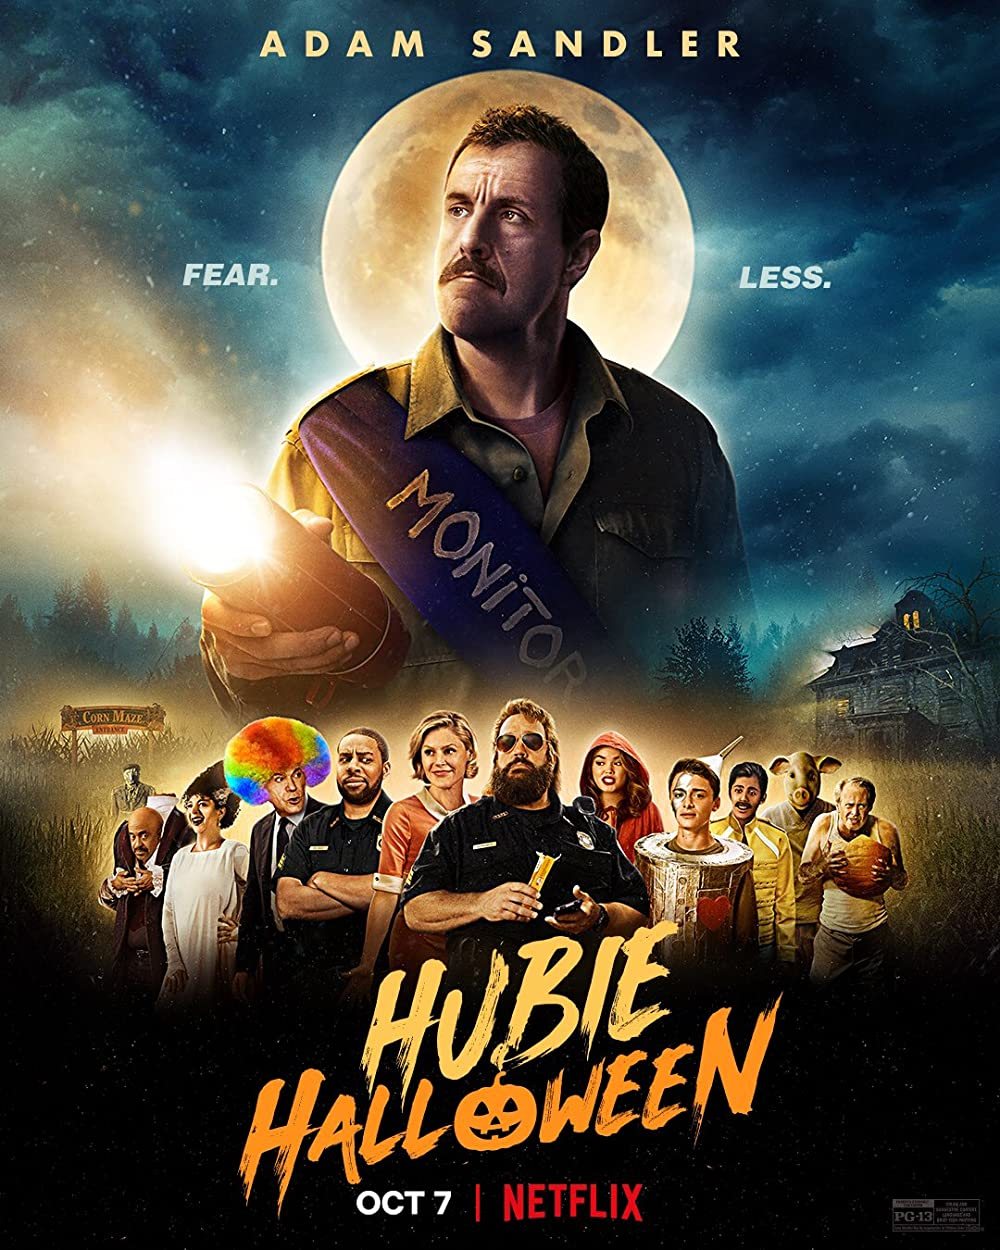 Hubie Halloween (2020) Subtitle Indonesia